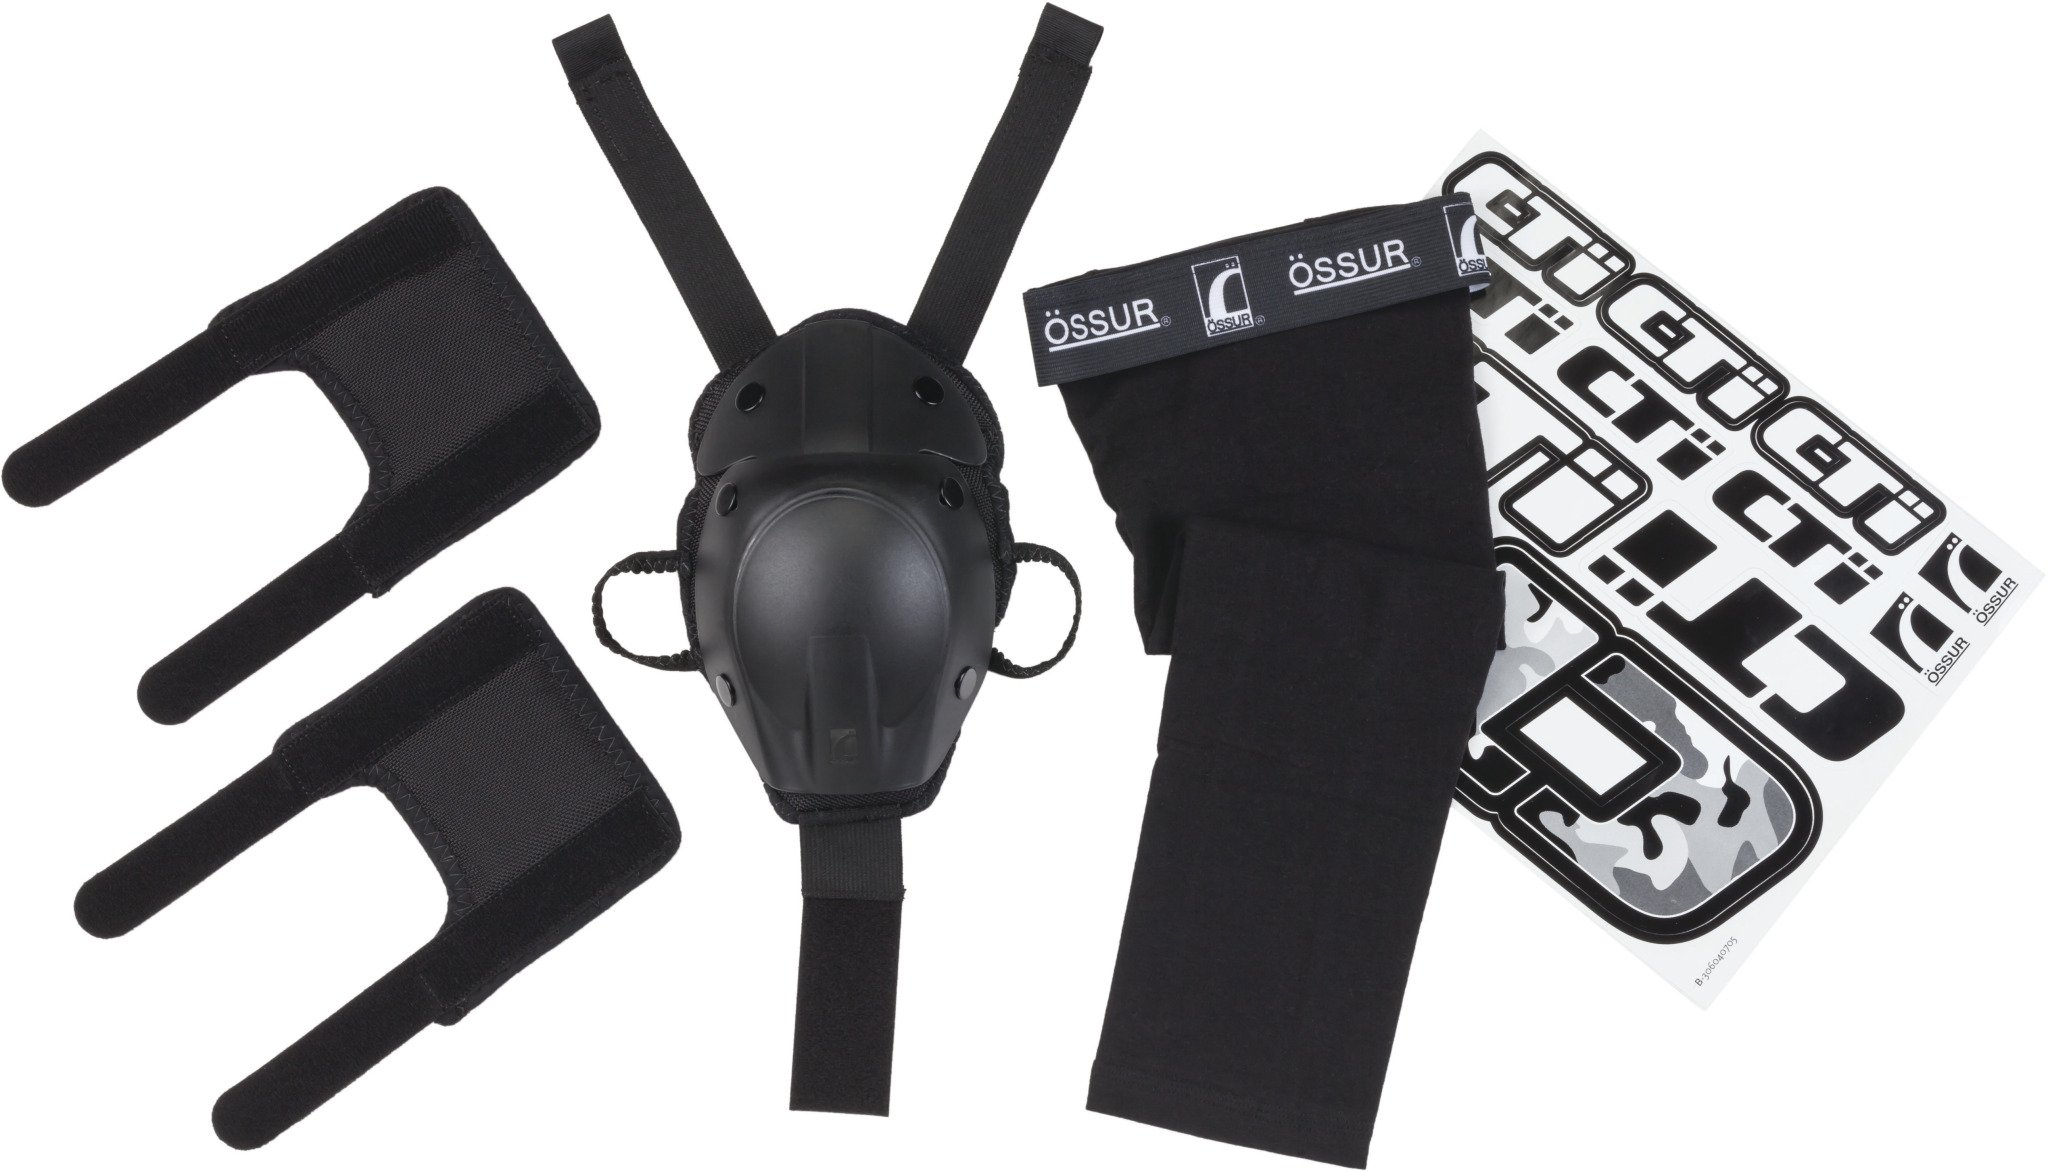 Ossur CTi Motocross MX Kit v2 - for CTi Knee Brace - Single Set Includes Patella Protection Cup, Gear Guards, Under-Sleeve and Sticker Sheet (Medium)